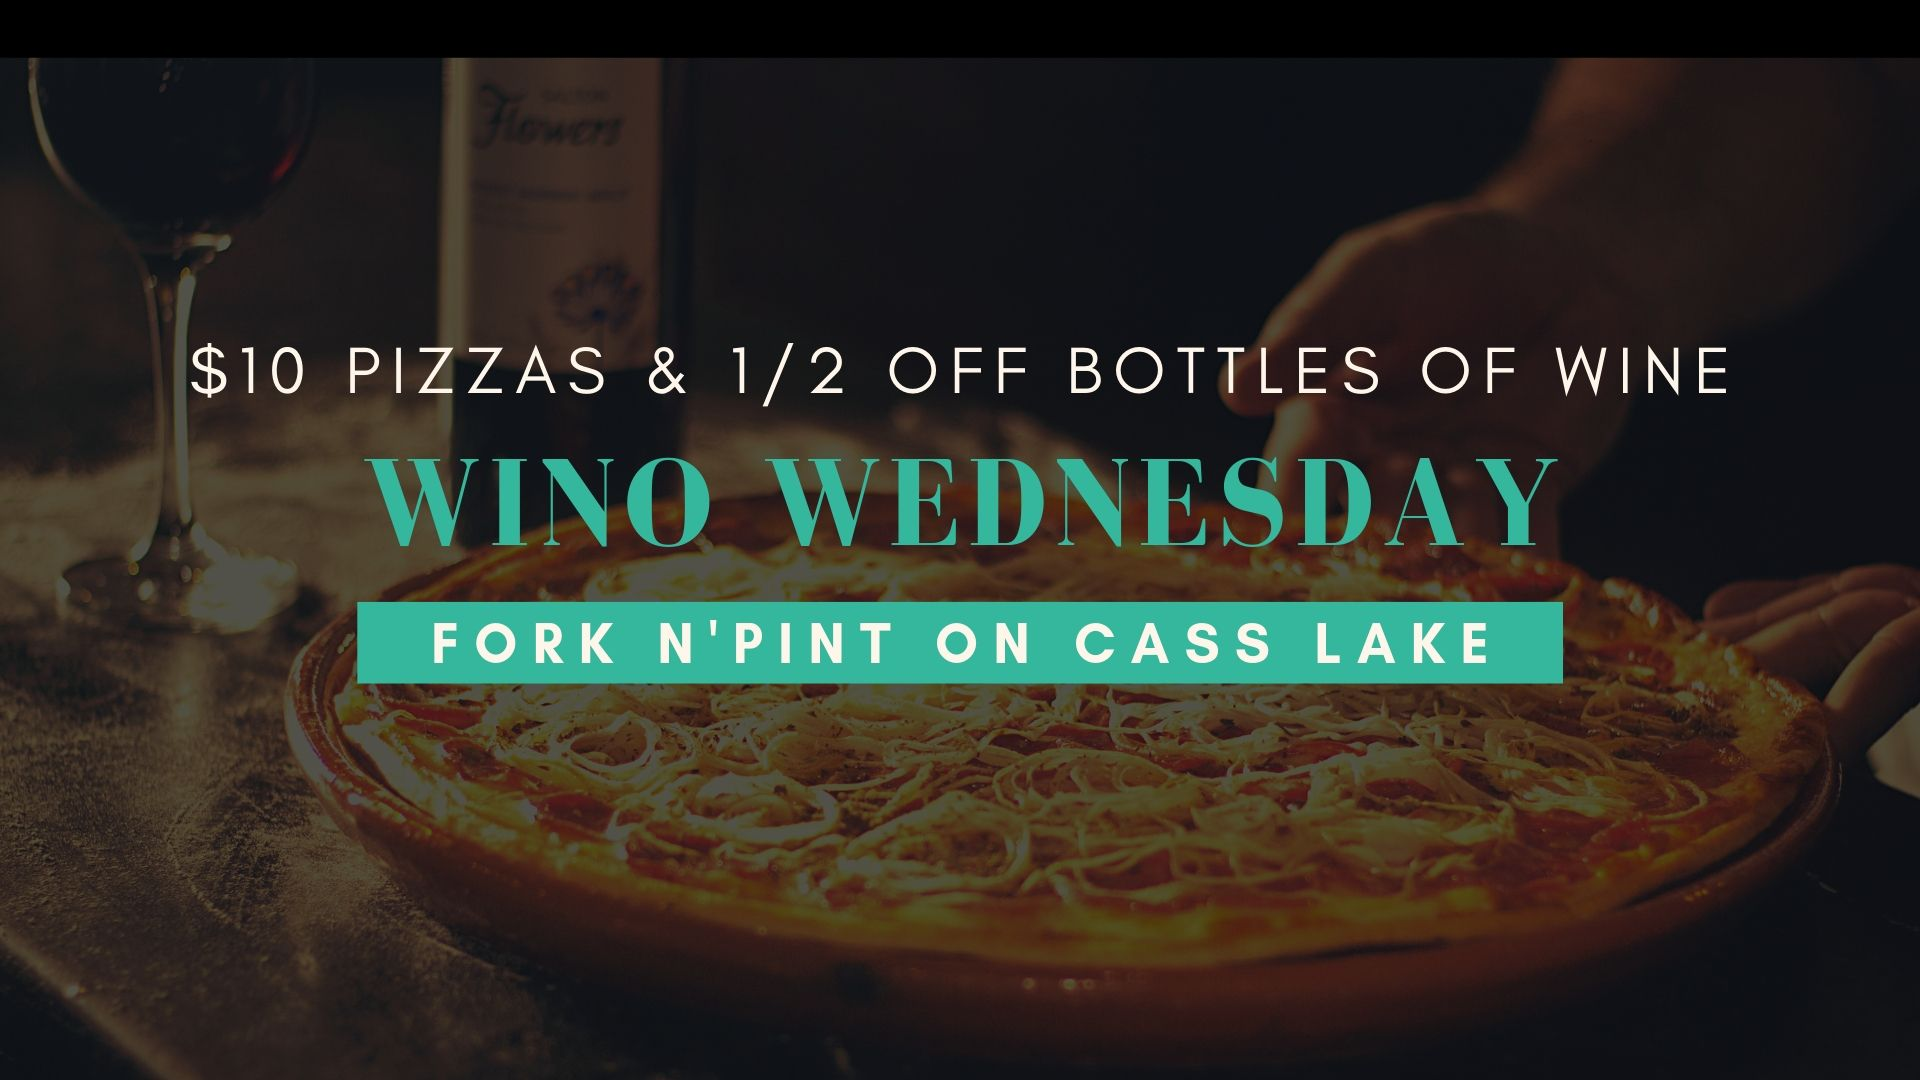 Wino Wednesday Cass Lake. $10 pizzas and 1/2 off bottles of wine